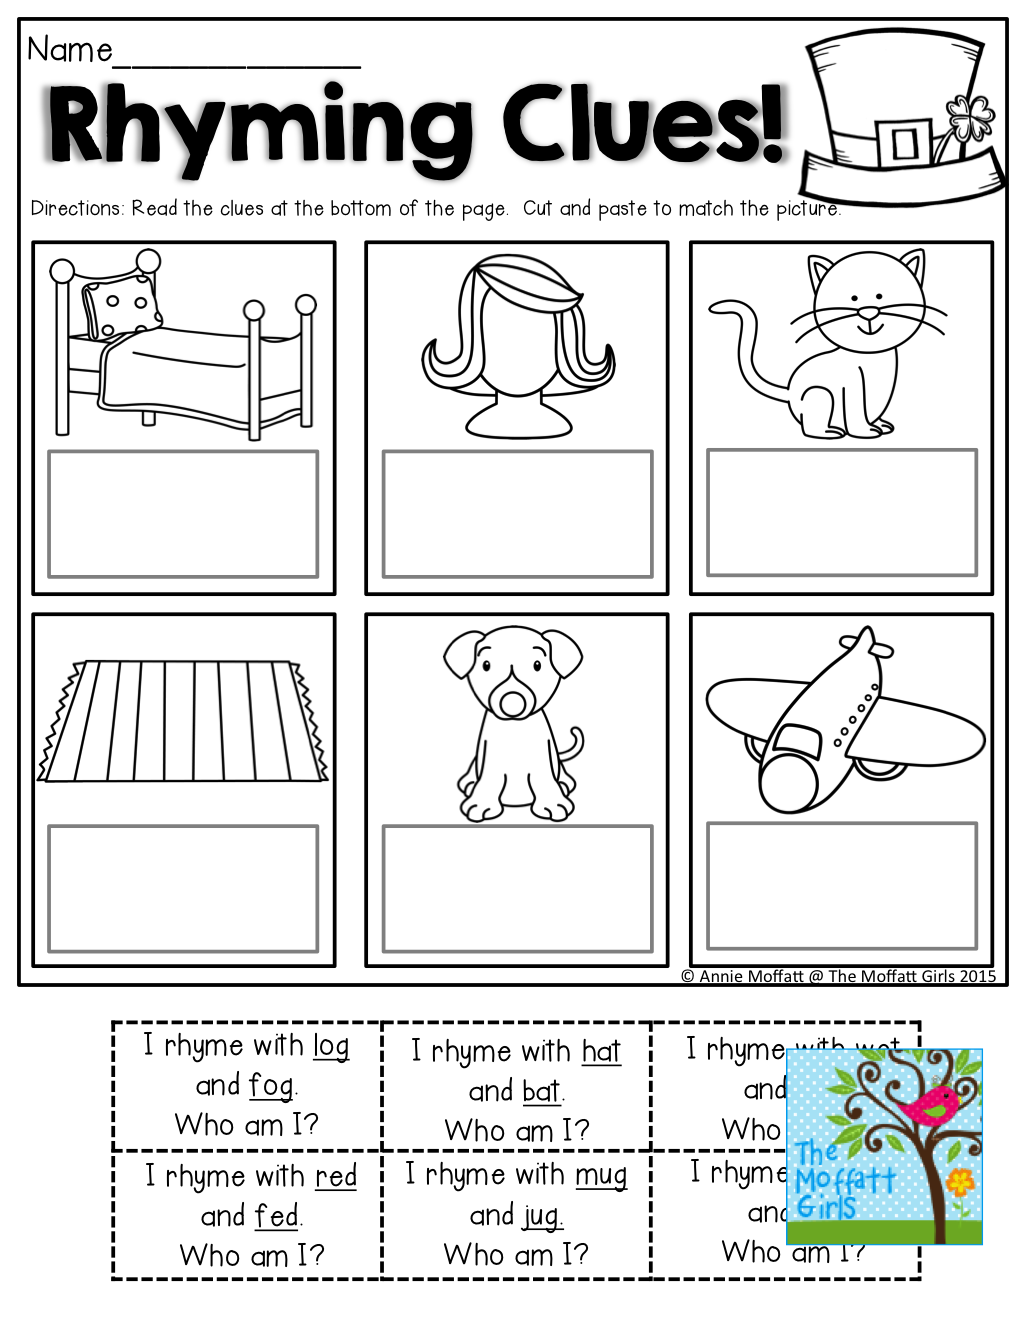 Rhyming Clues Such A Fun And Effective Way To Read And Rhyme Tons Of Great Printables Phonics Reading Rhyming Words Rhyming Activities [ 1325 x 1024 Pixel ]